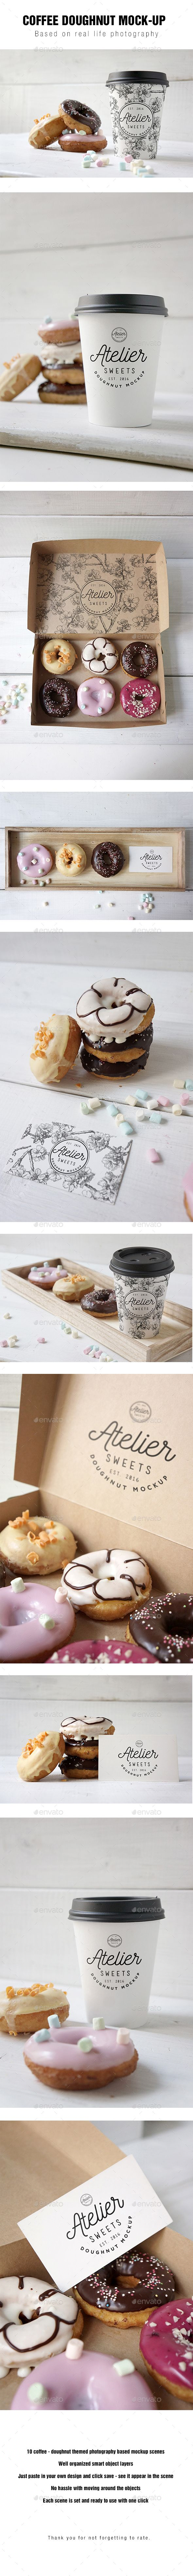 Coffee Doughnut Mockup. Download here: https://graphicriver.net/item/coffee-doughnut-mockup/17144327?ref=ksioks